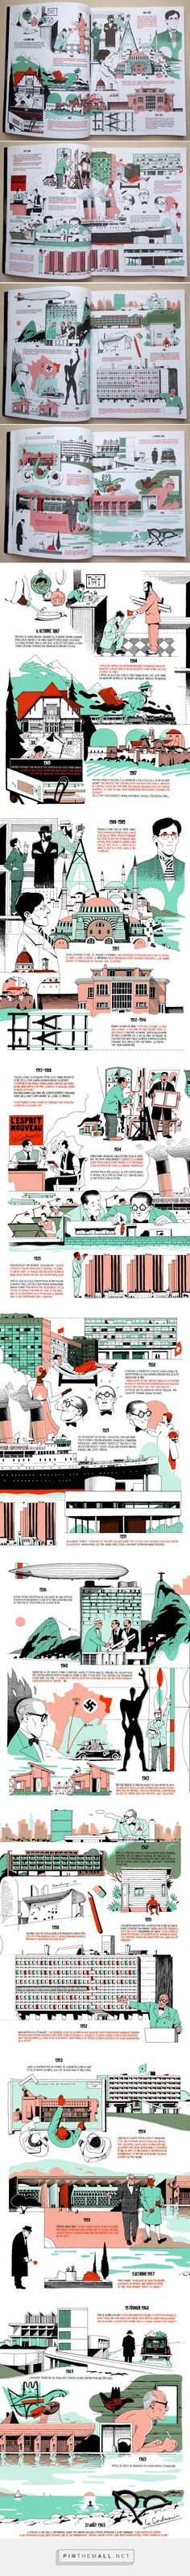 Le Corbusier / Biography - Télérama Special on Behance - created via https://pinthemall.net